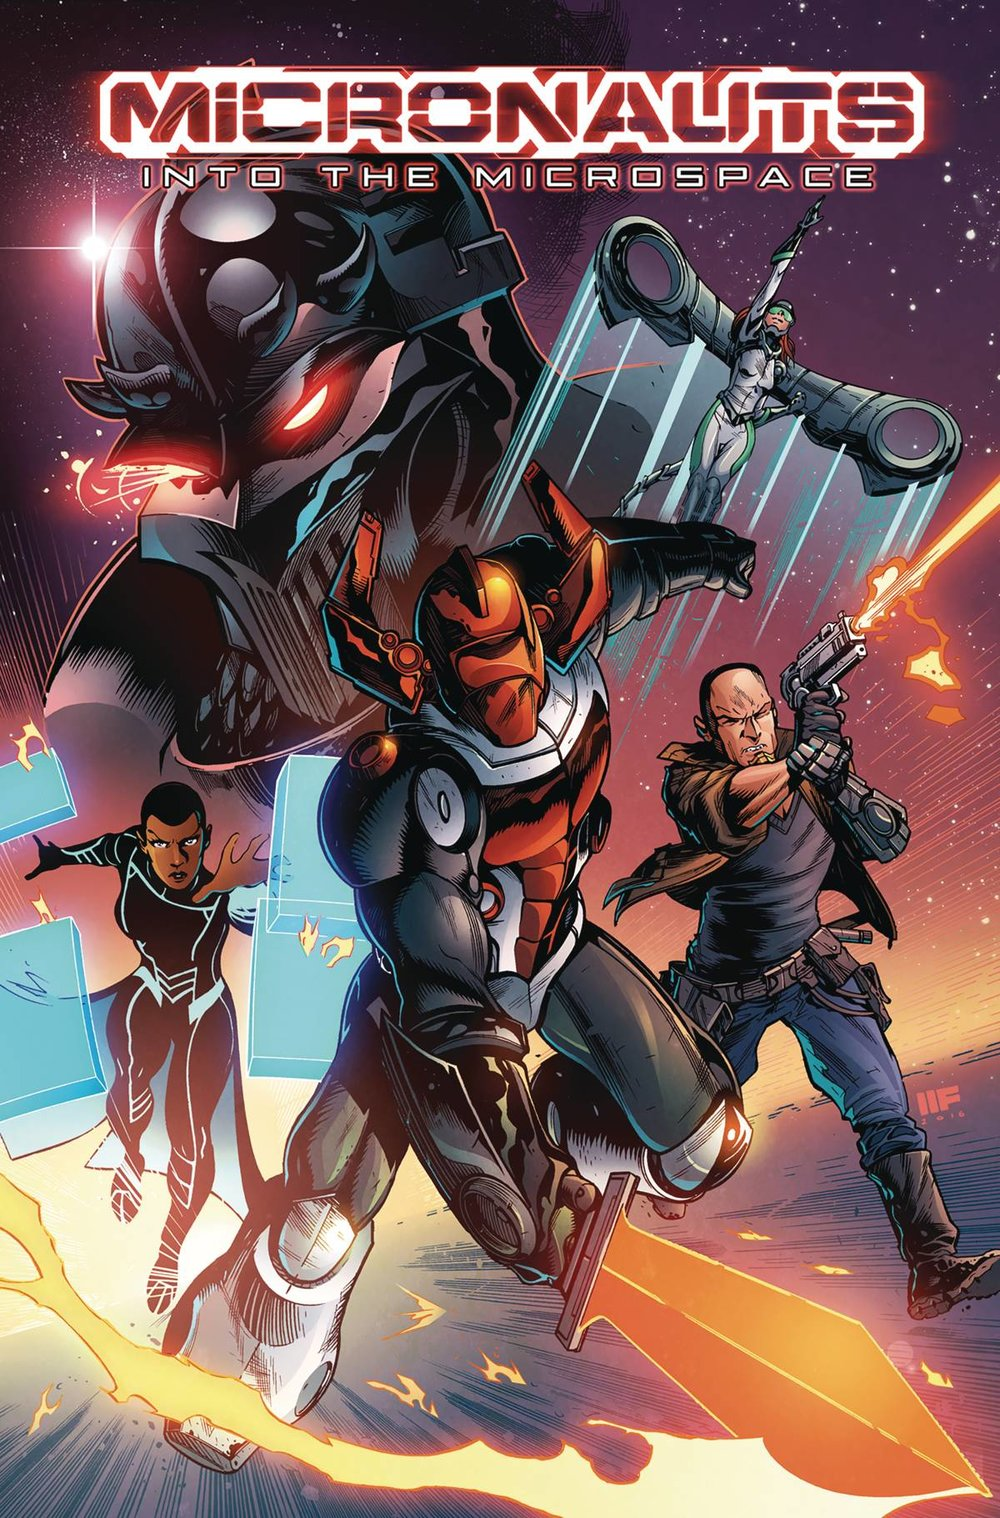 MICRONAUTS INTO THE MICROSPACE TP